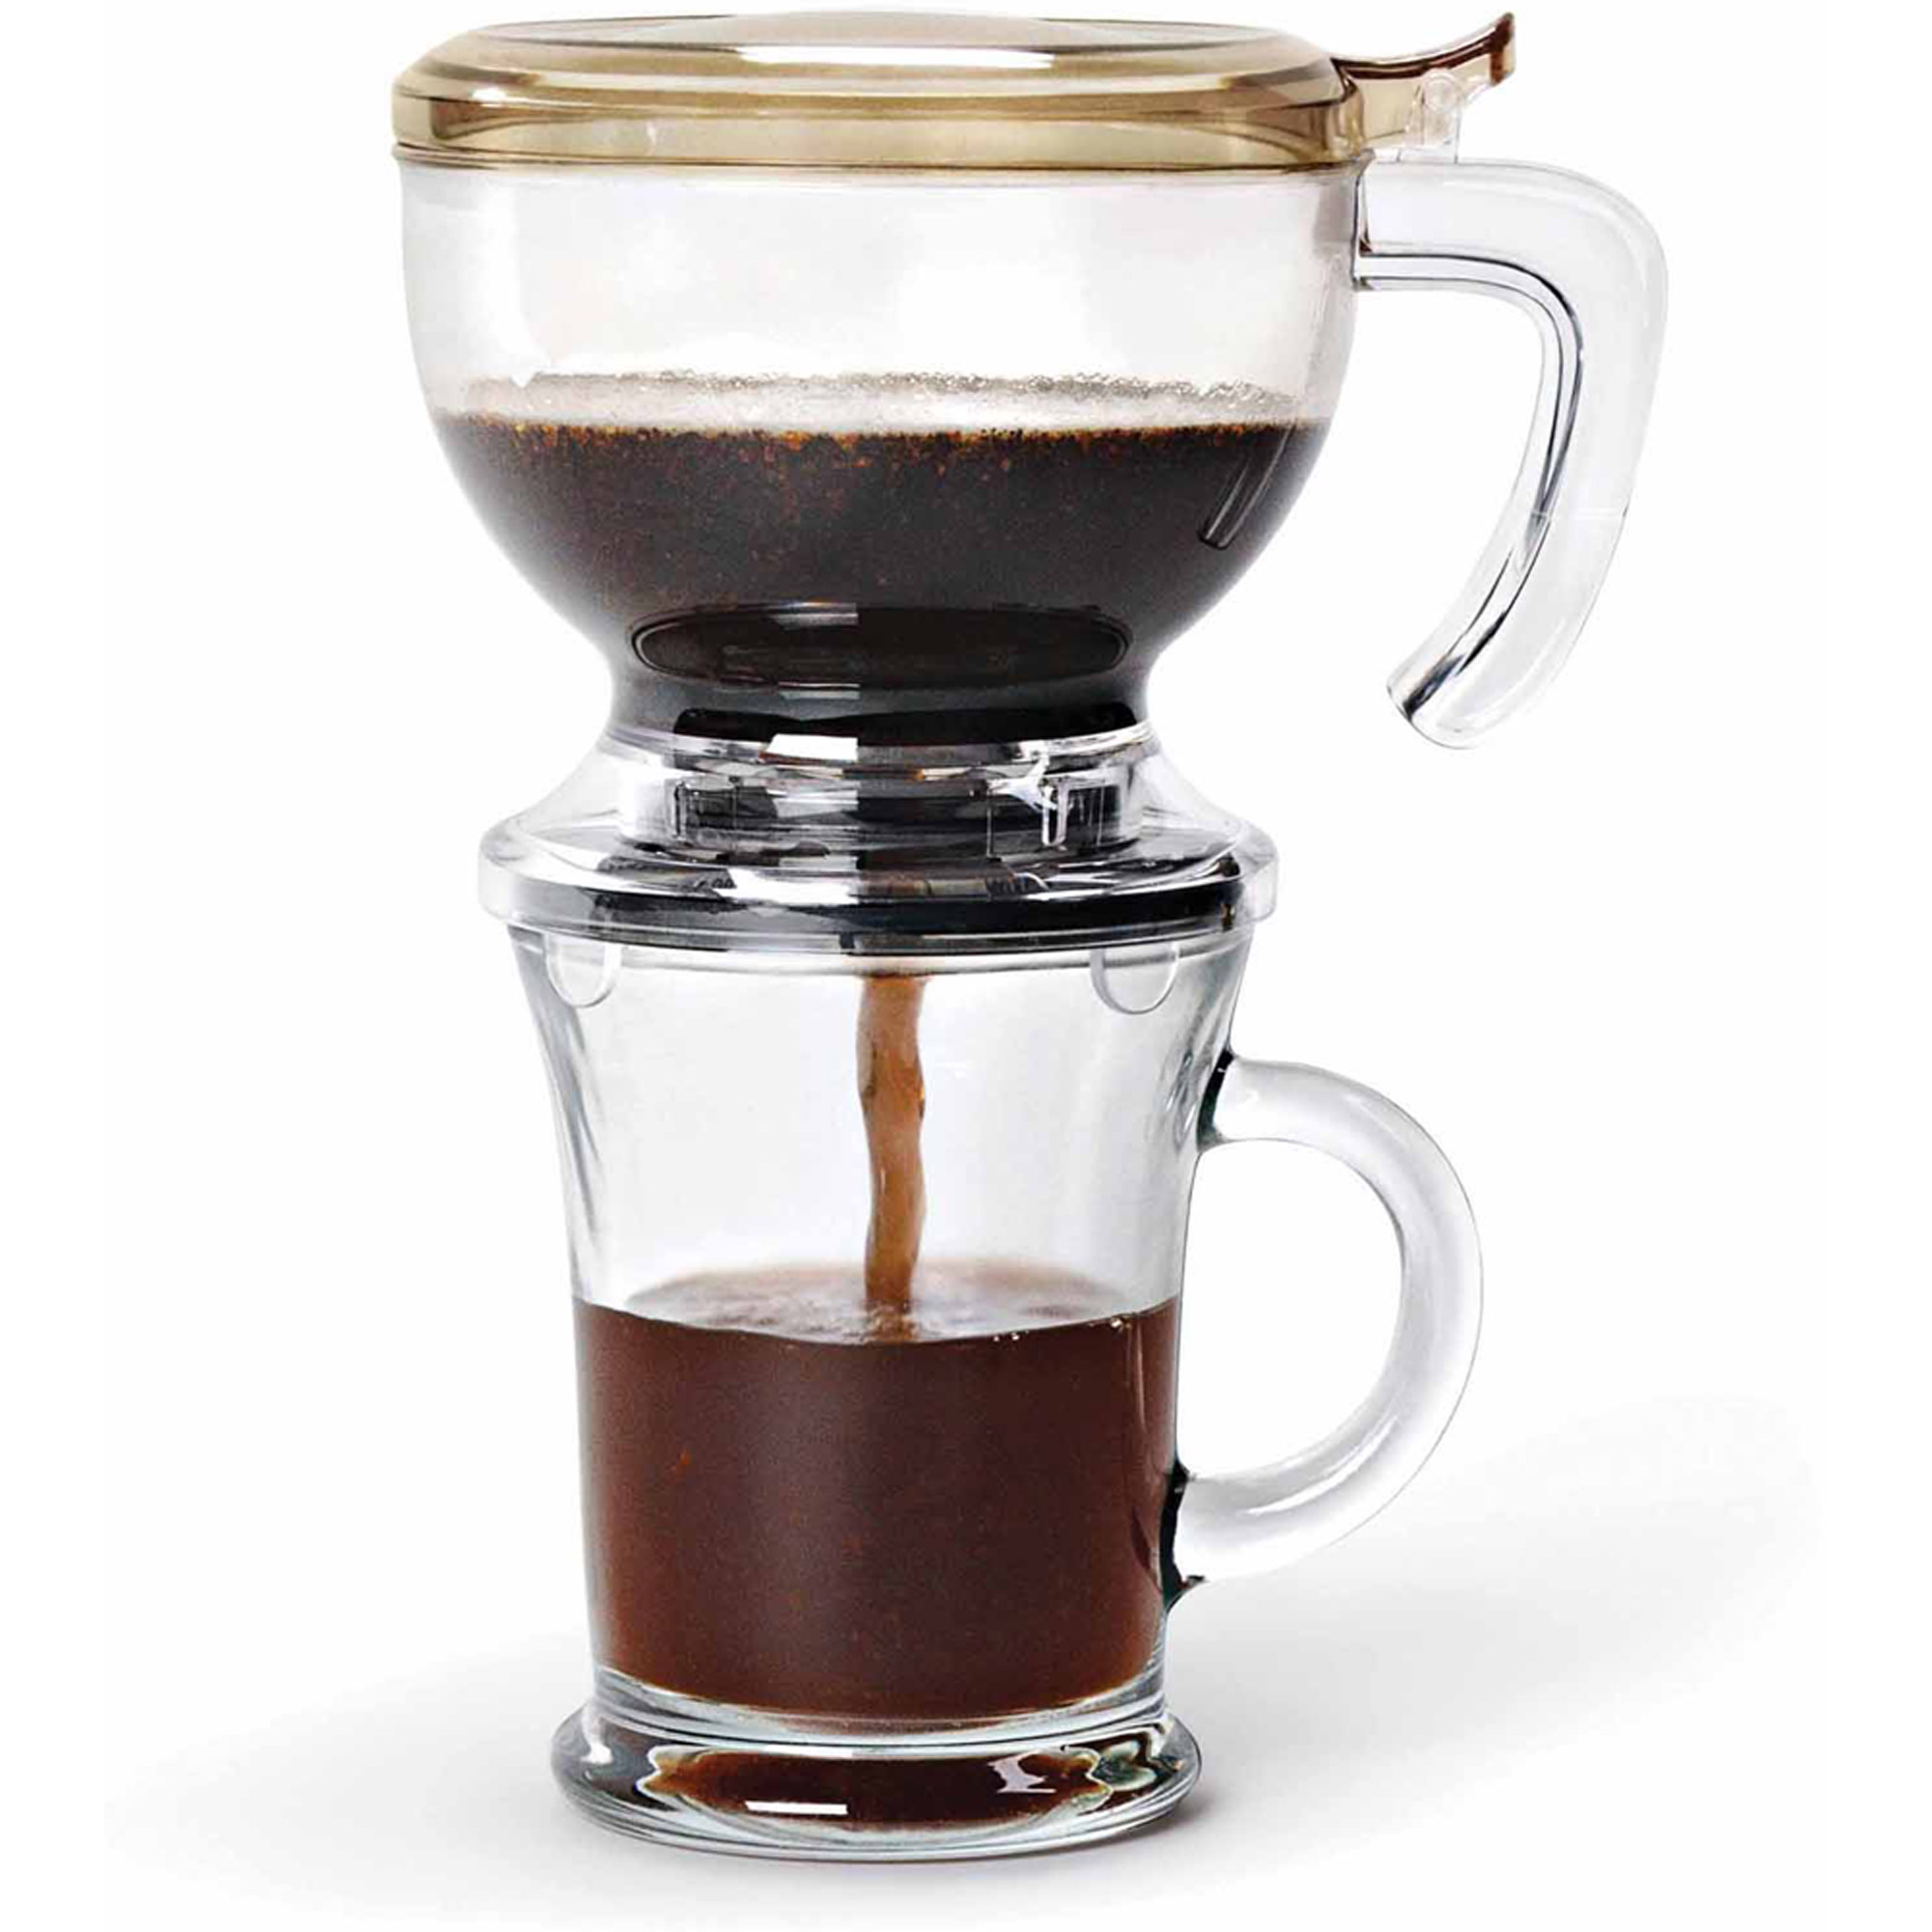 Zevro by Honey Can Do Incred 'a Brew Coffee Maker Set